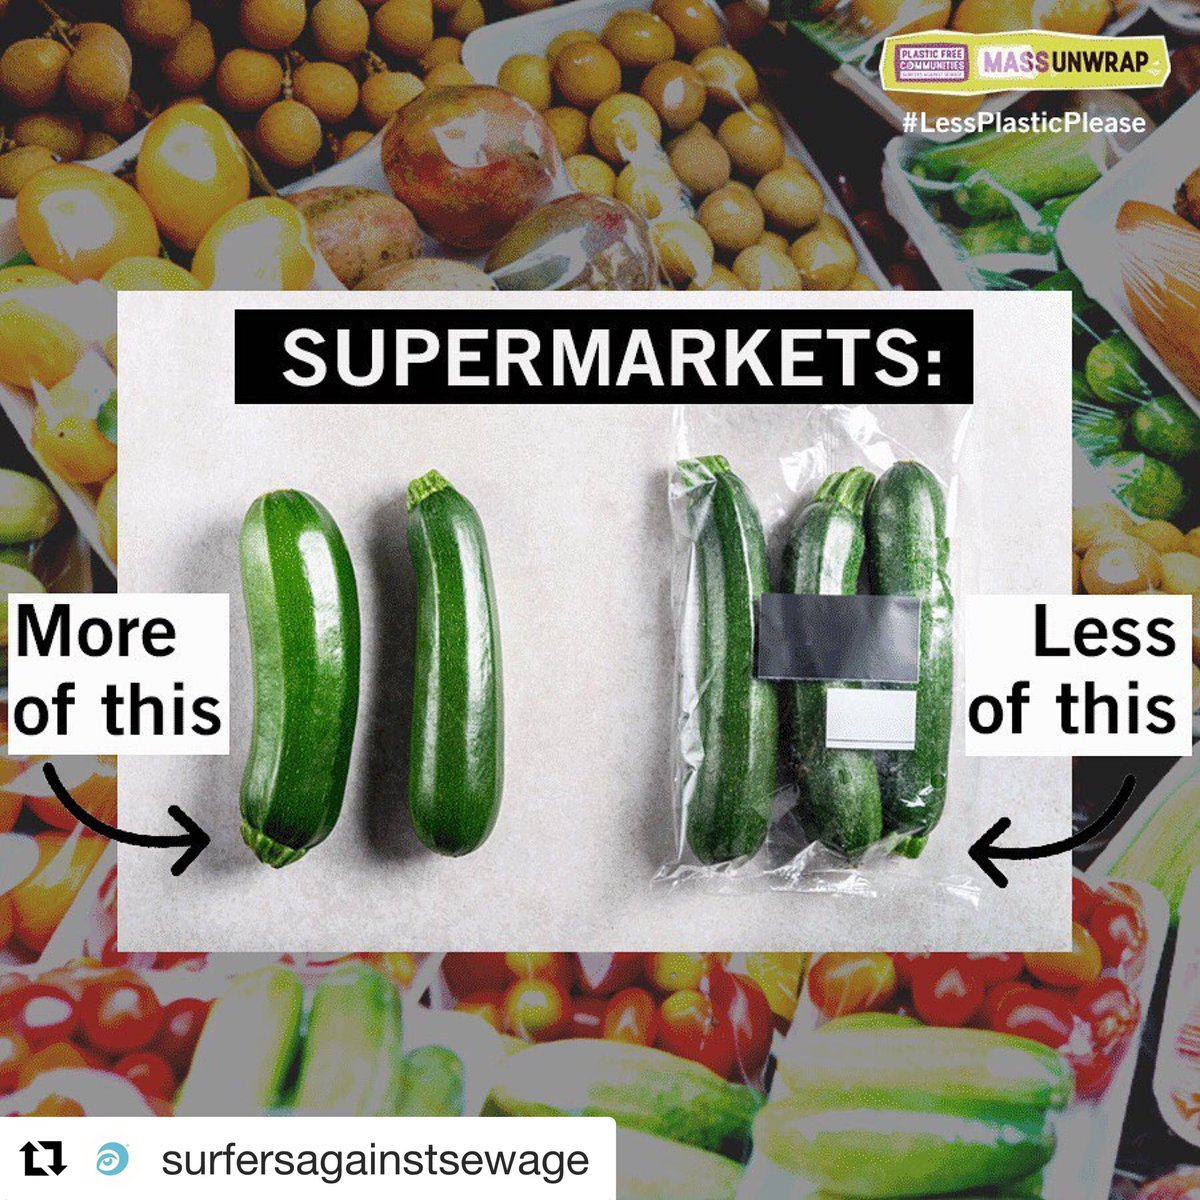 Retweet if you want to see more supermarkets #breakfreefromplastic!